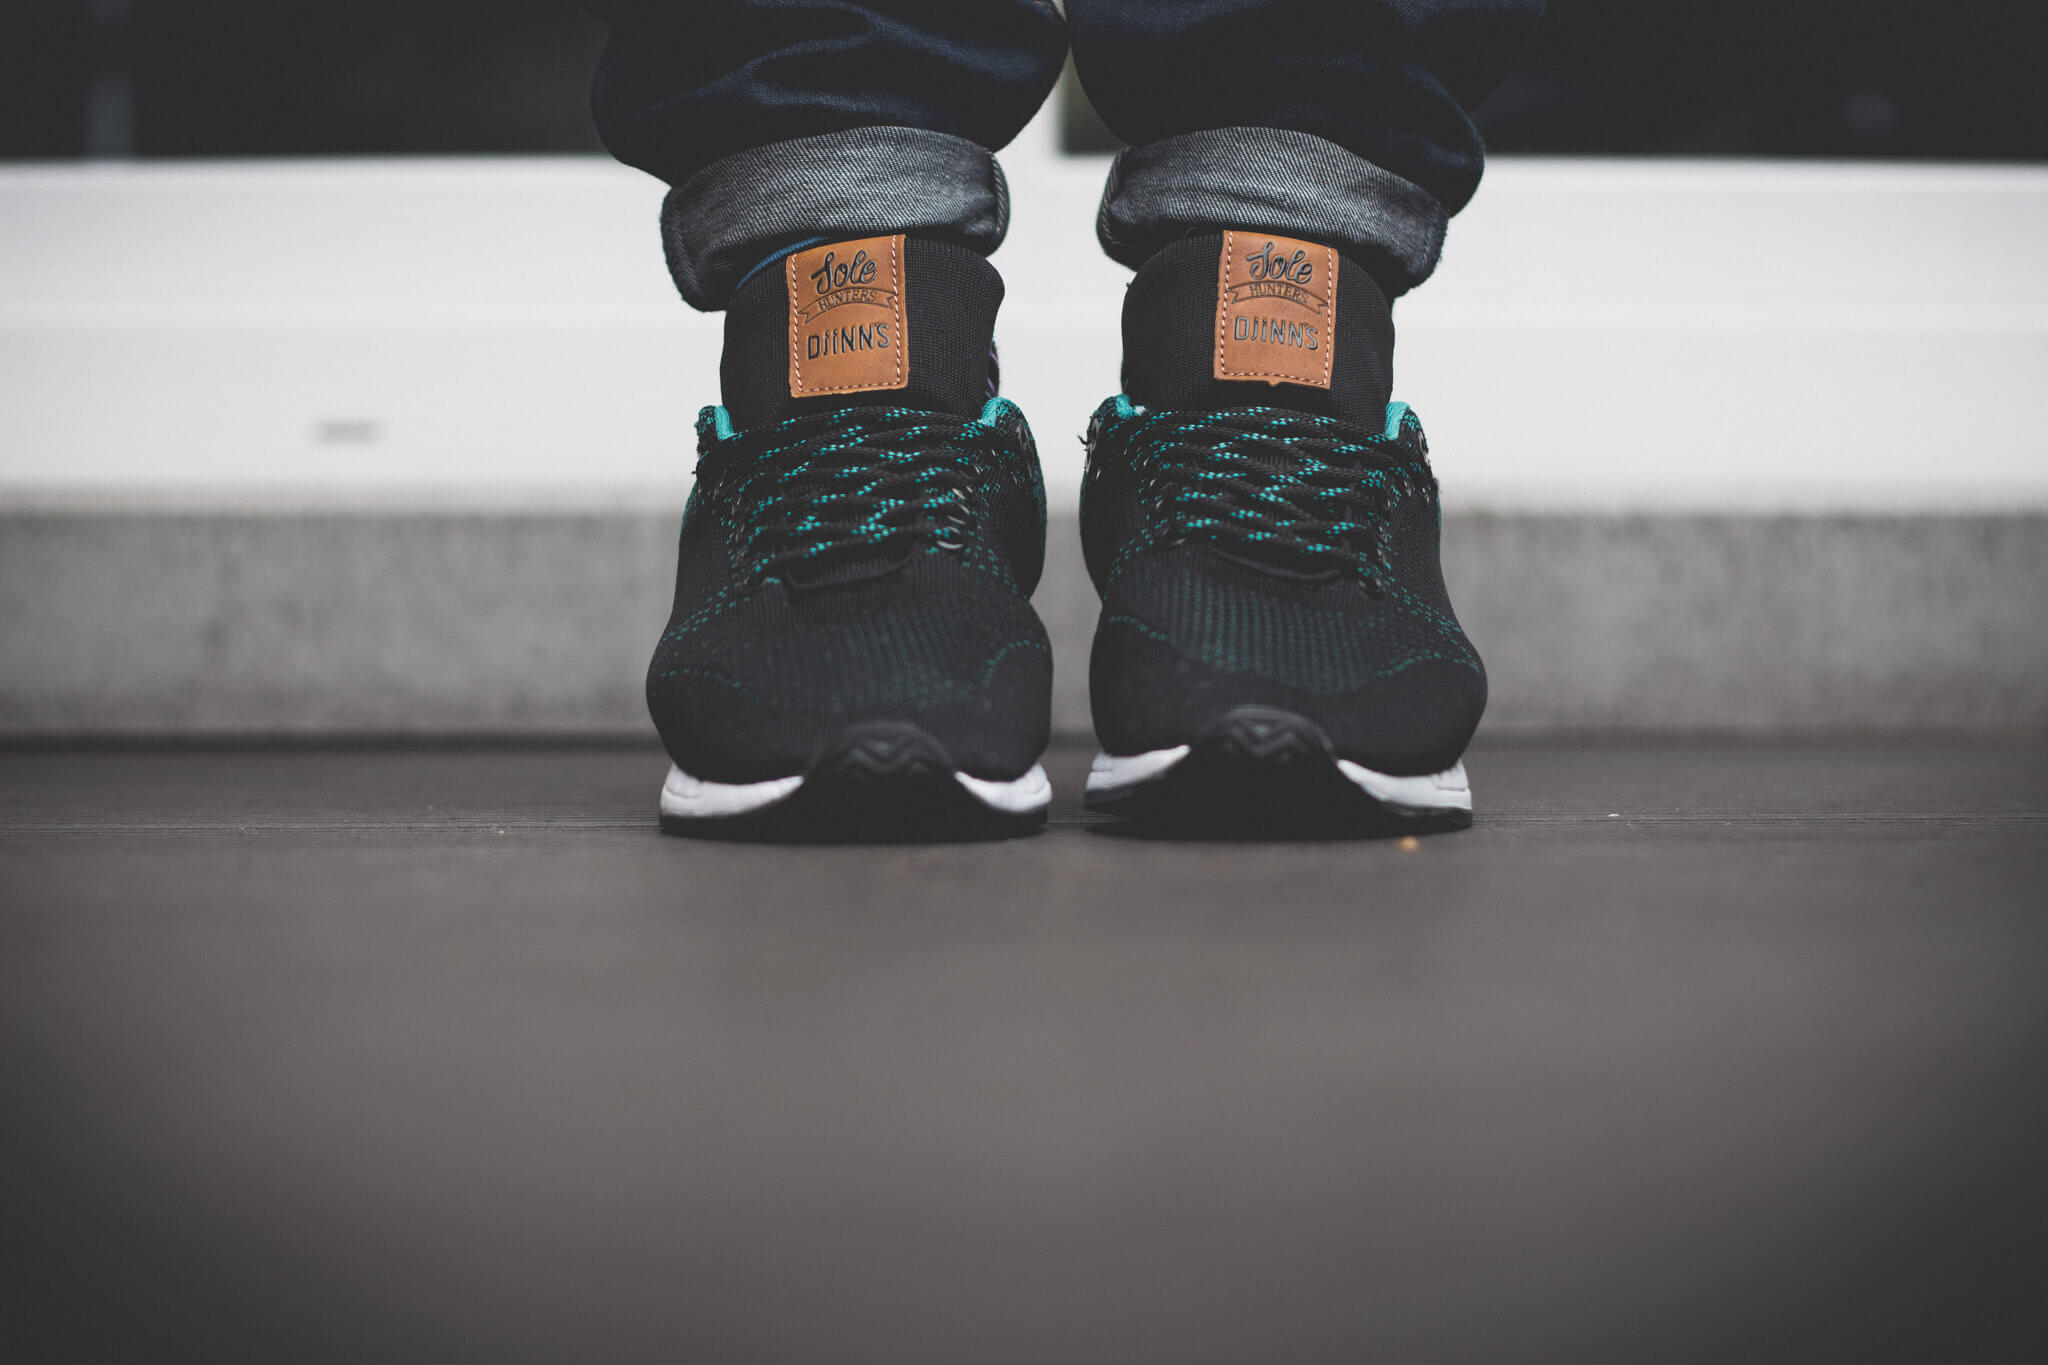 Djinns x Sole Hunters EasyRun Hunter 6